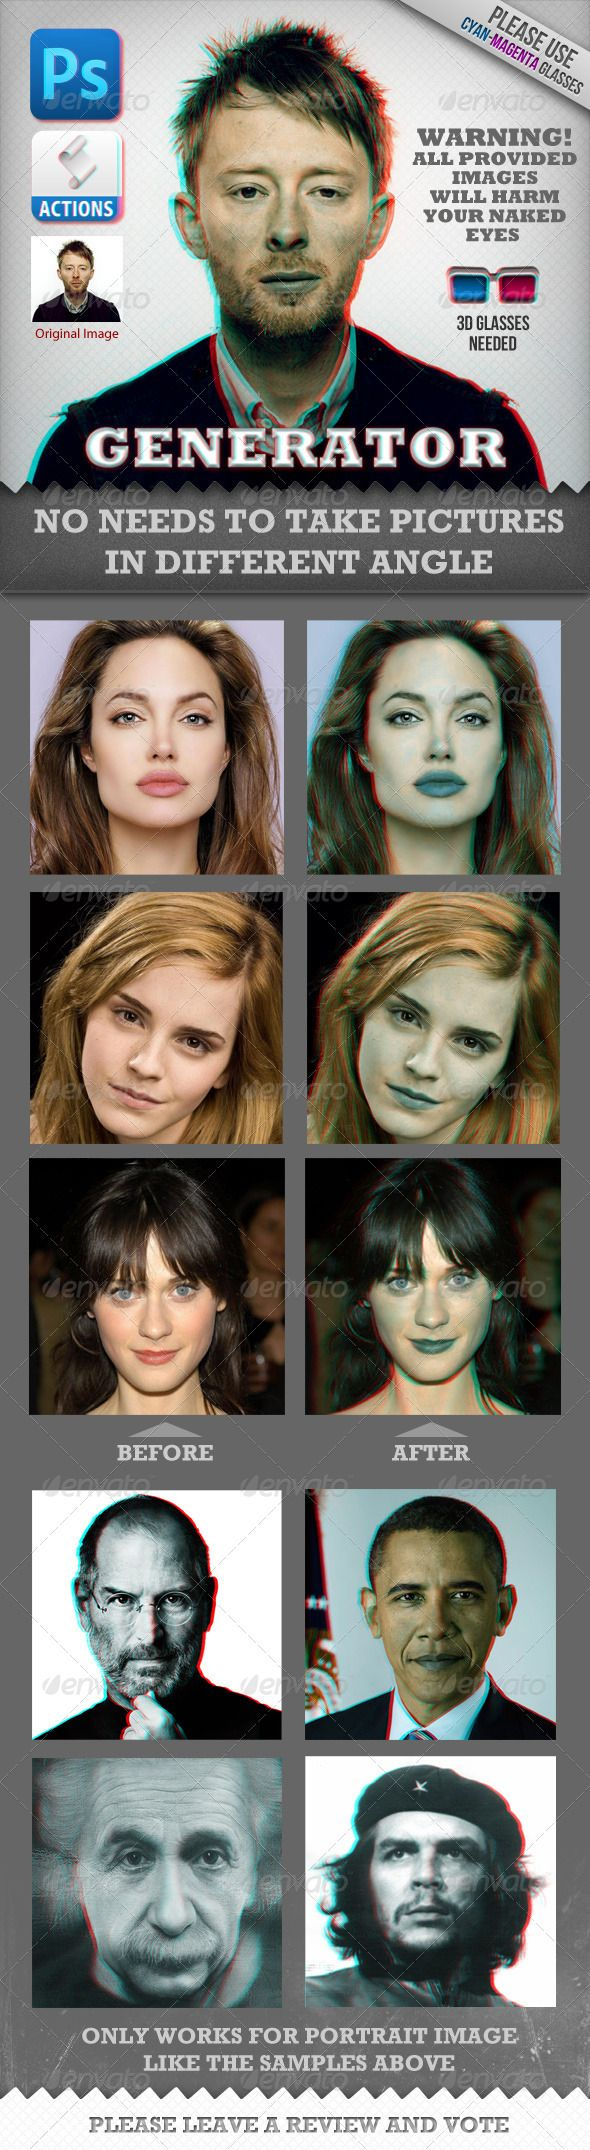 Anaglyph 3D Face Generator (Real Works)